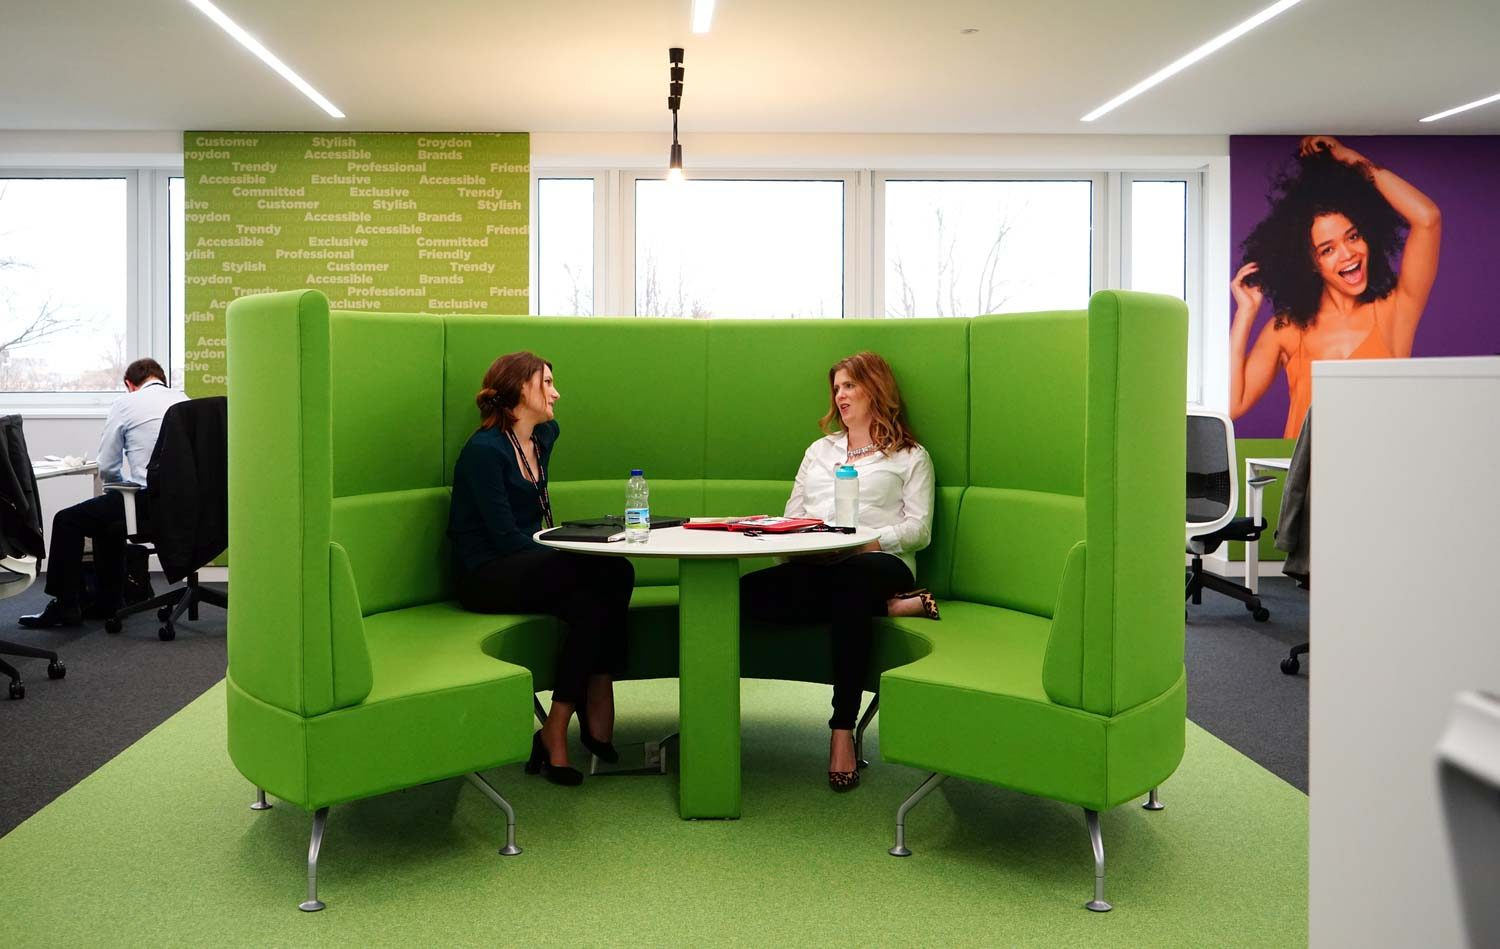 Green soft furniture in breakout area